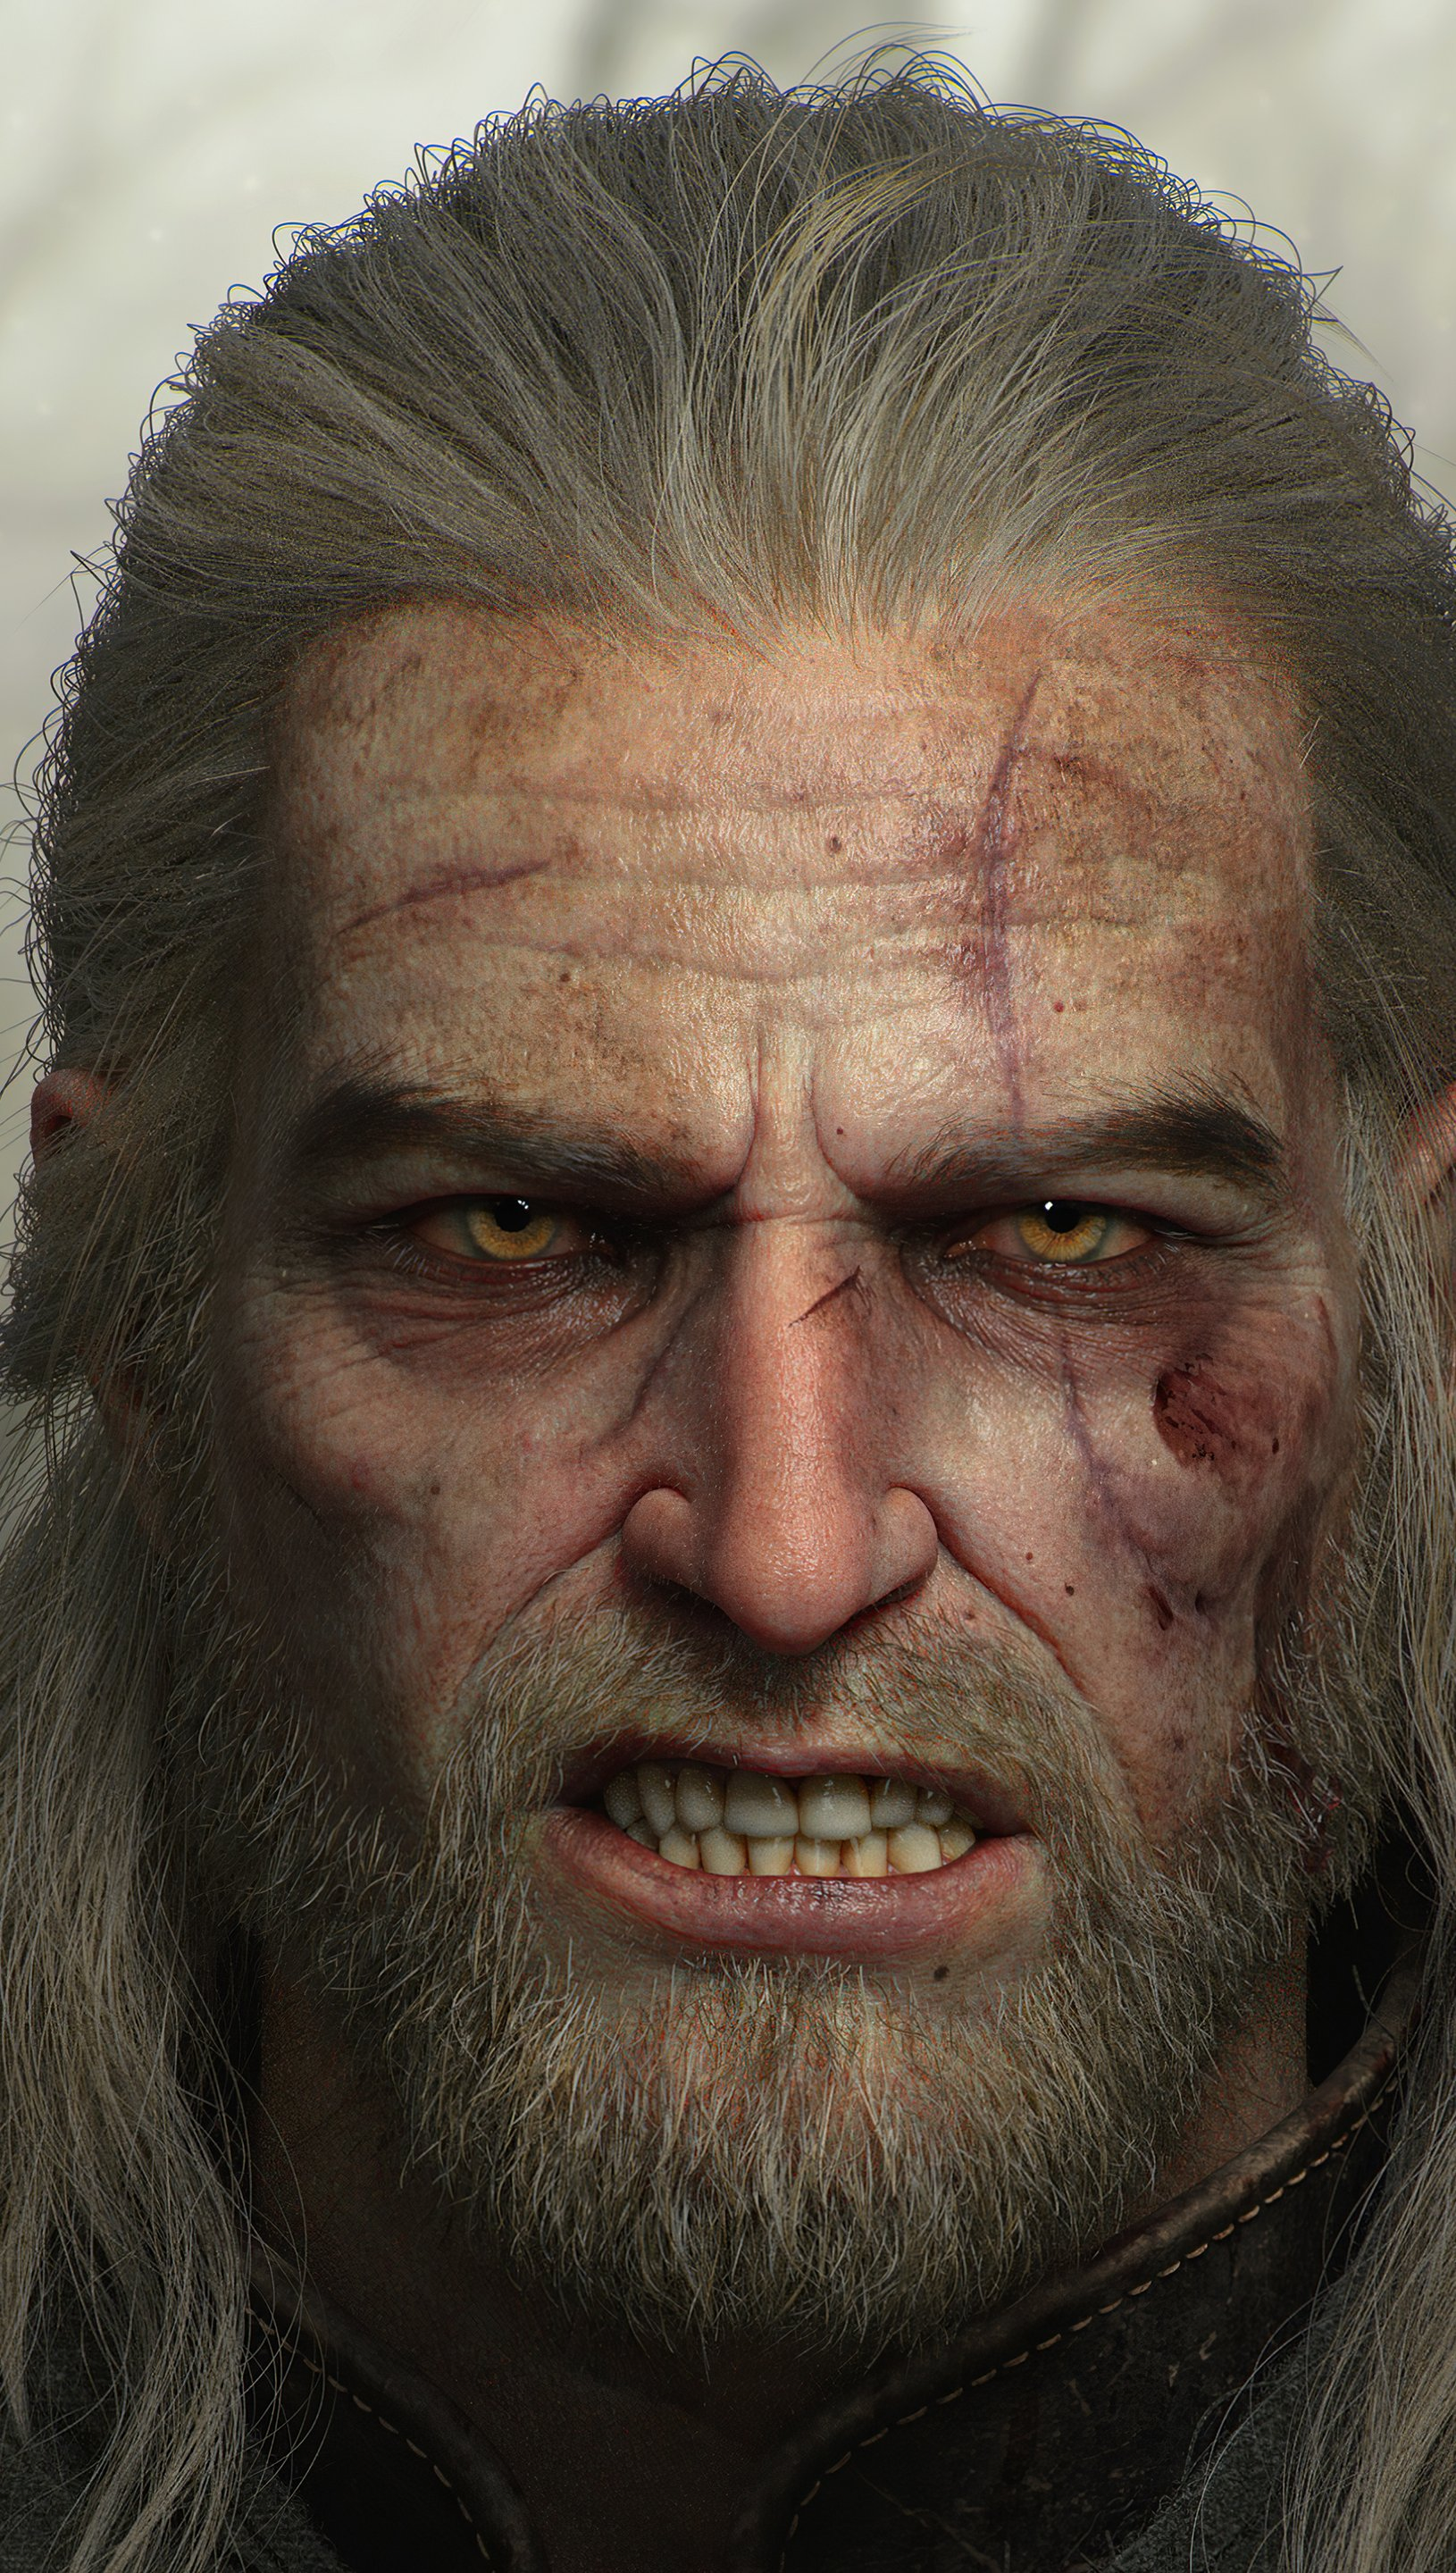 Fondos de pantalla Geralt de Rivia The Witcher 3 Vertical